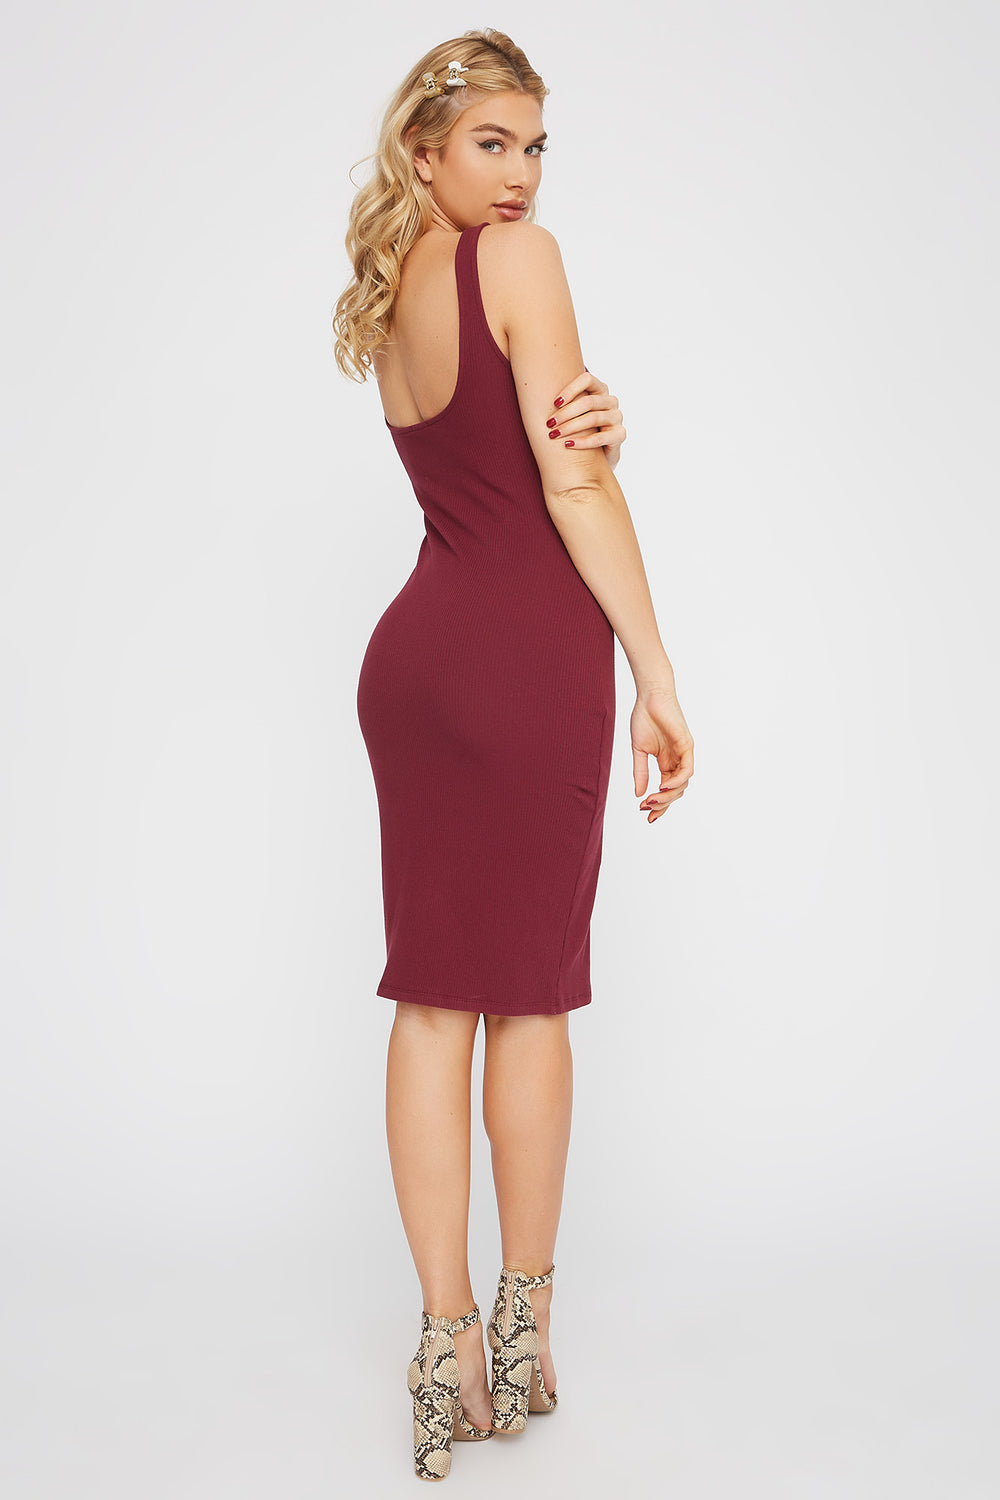 Ribbed Scoop Neck Mini Tank Dress Burgundy